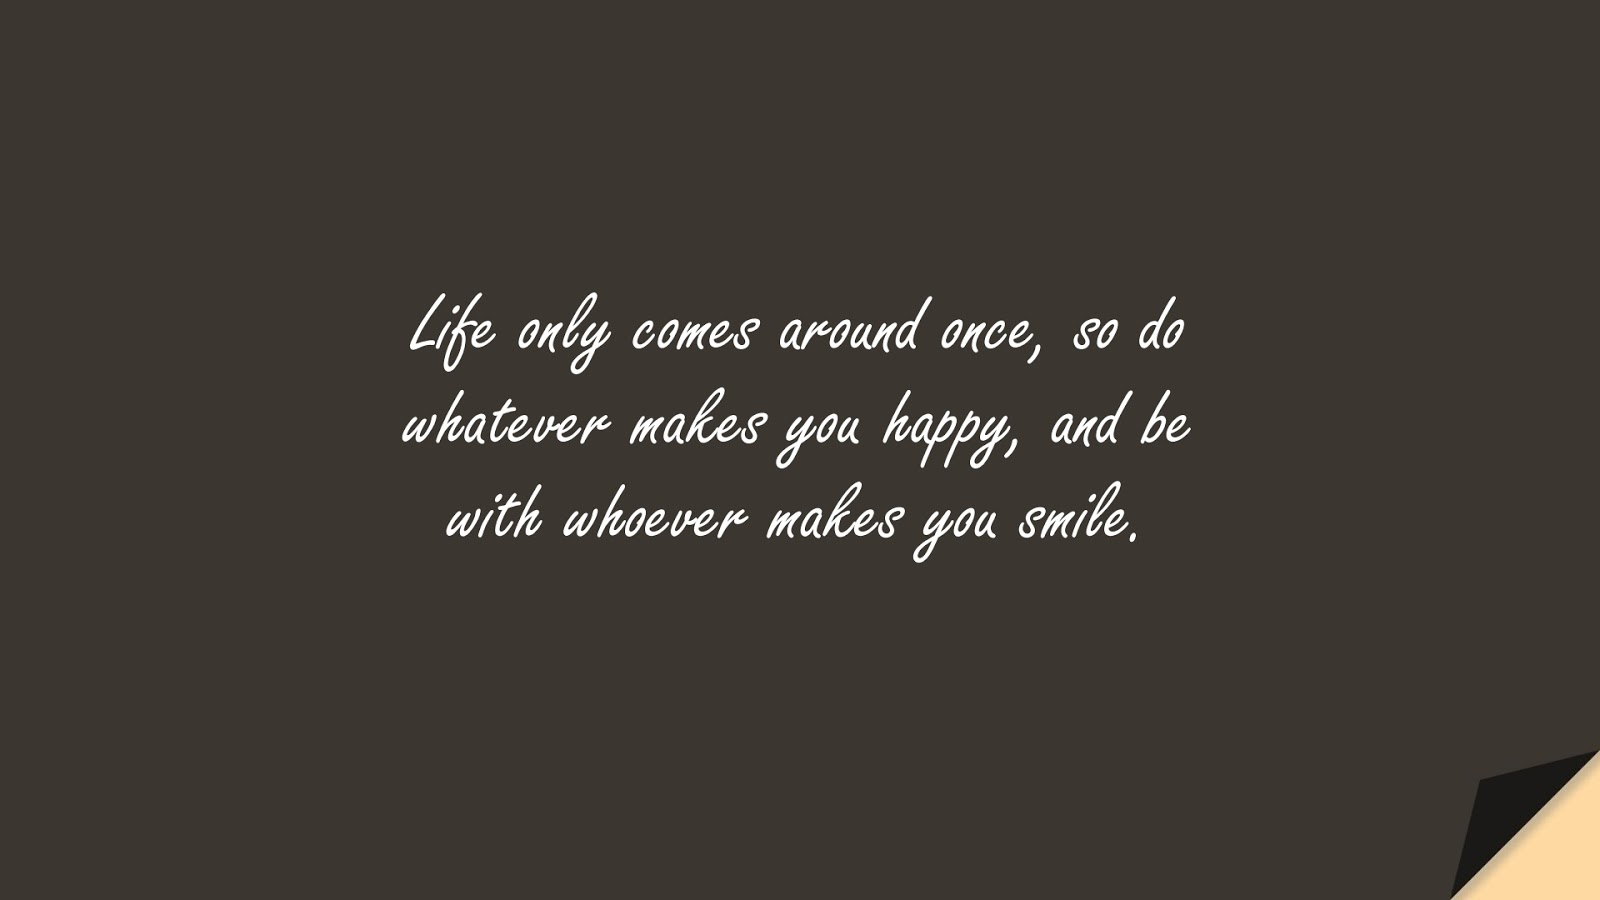 Life only comes around once, so do whatever makes you happy, and be with whoever makes you smile.FALSE